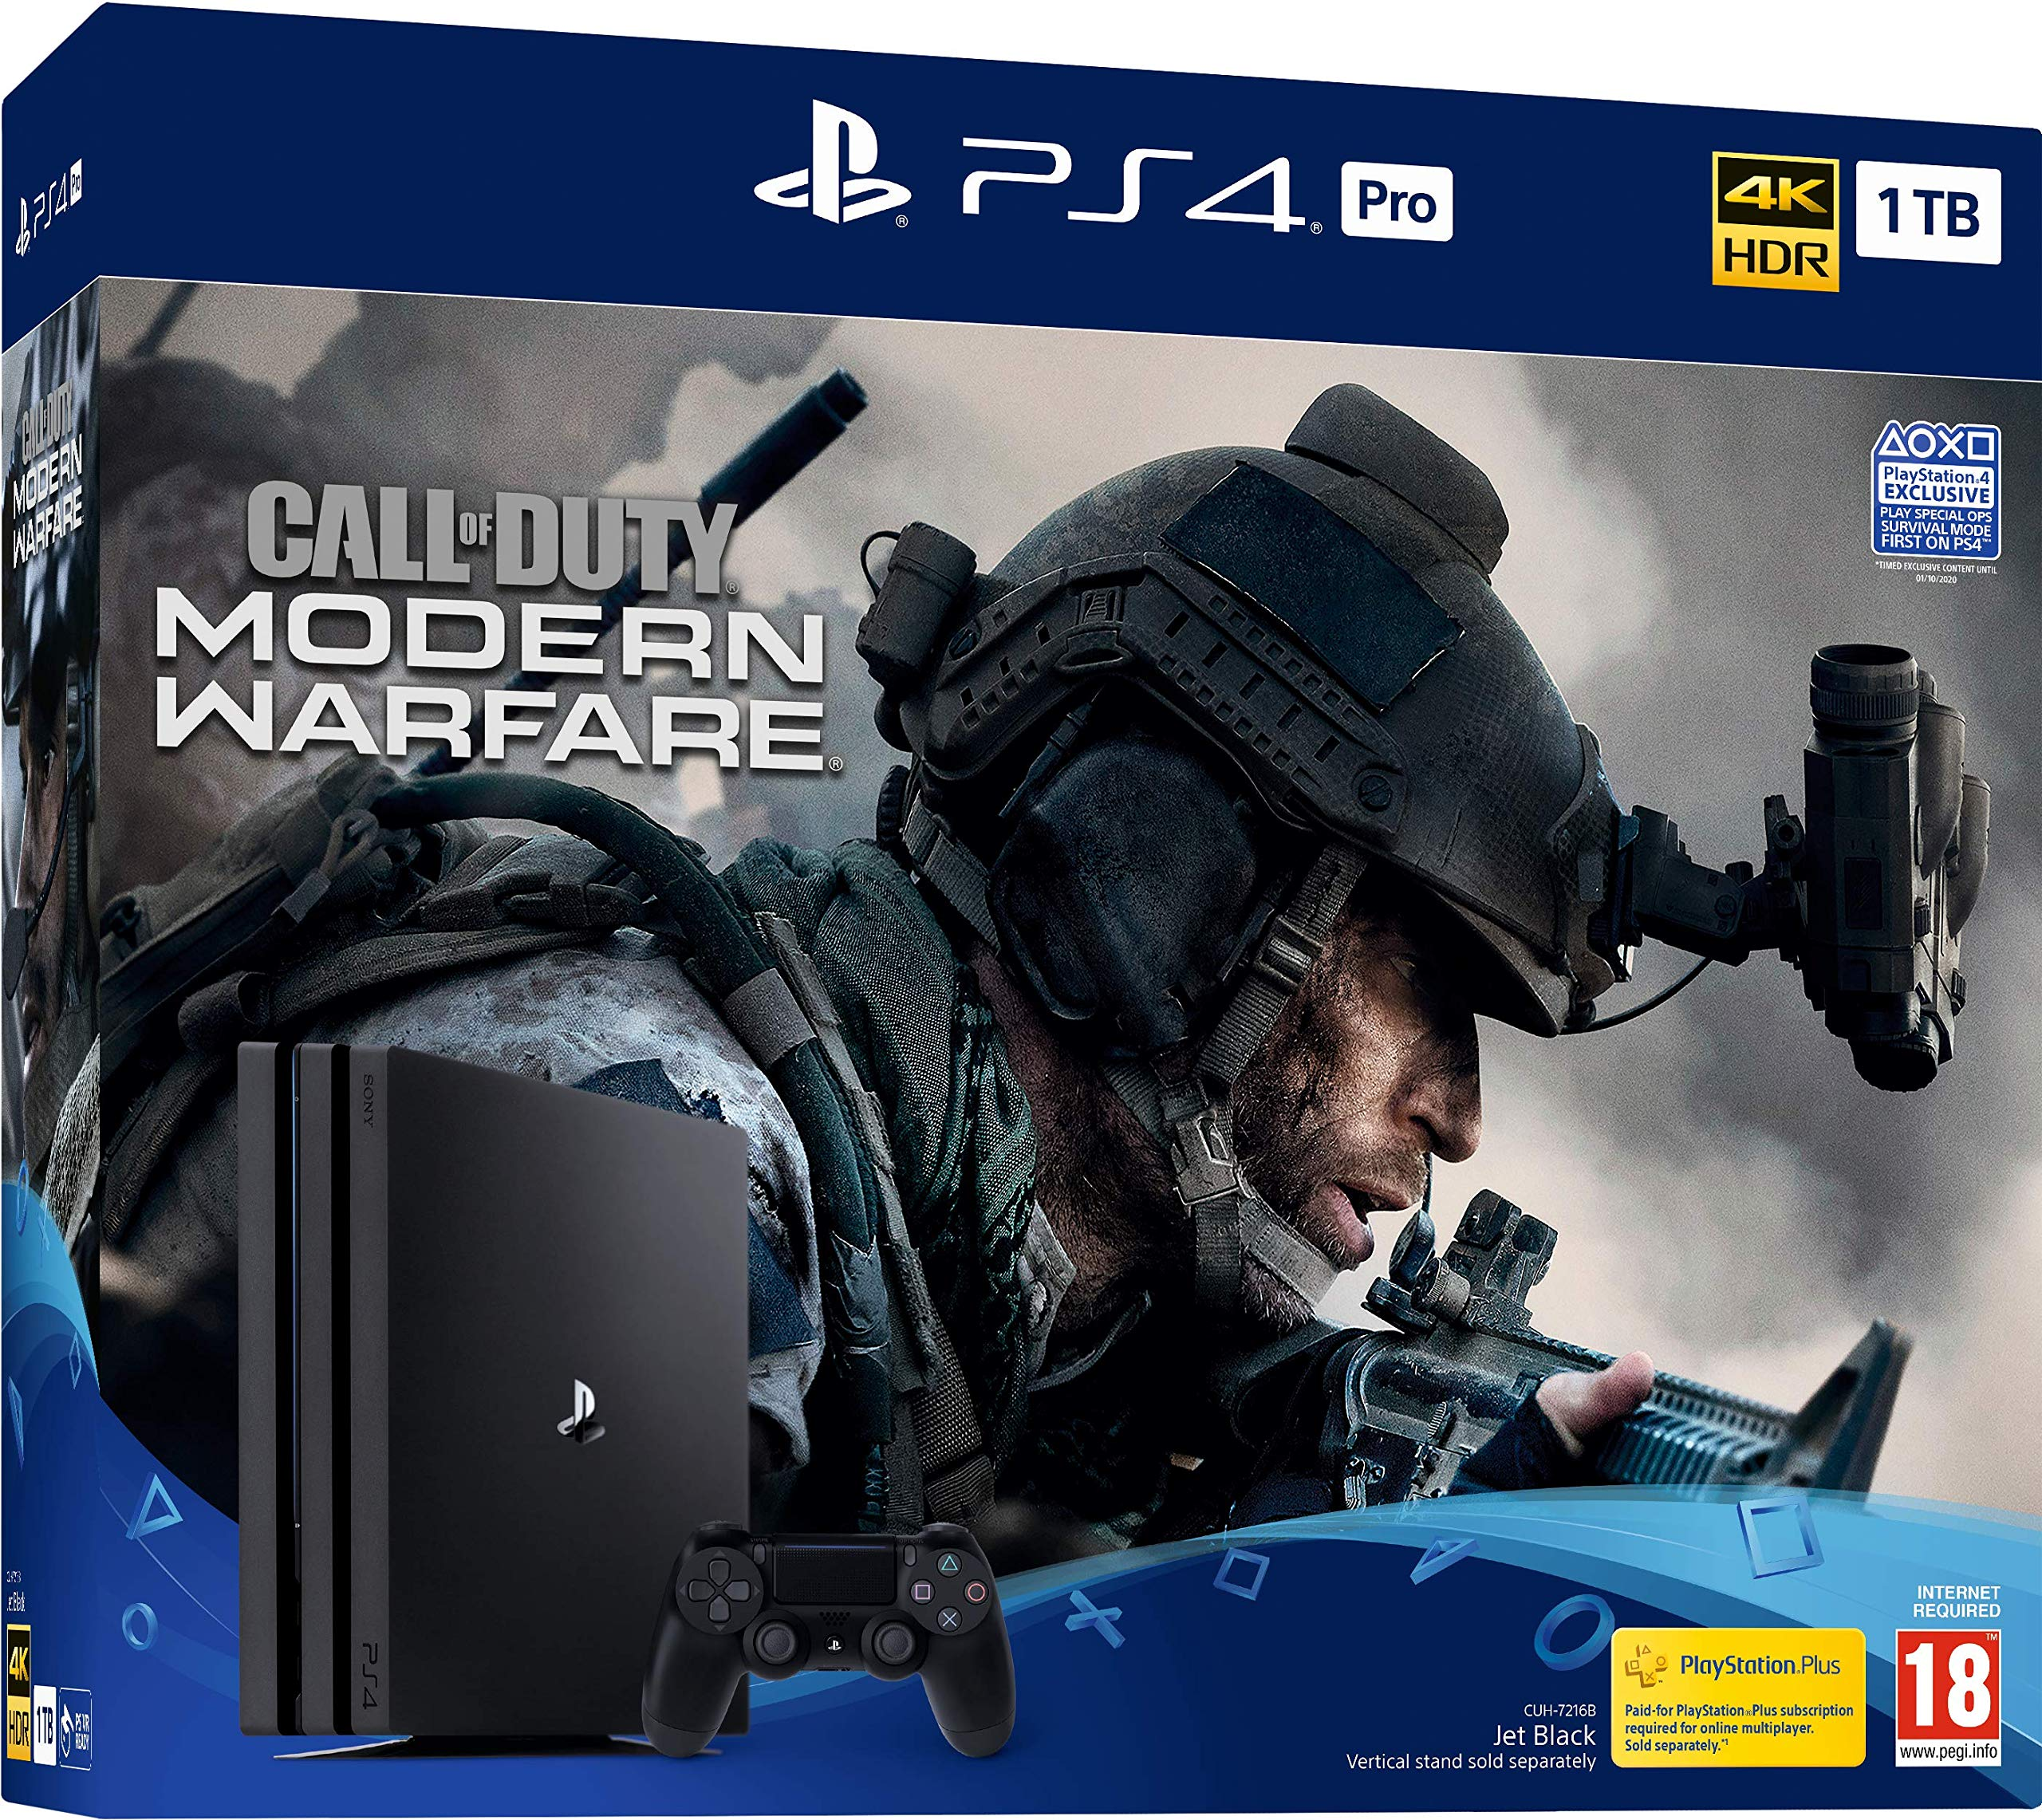 Call Of Duty: Modern Warfare PS4 Pro Bundle - PlayStation 4 [Importación inglesa]: Amazon.es: Videojuegos